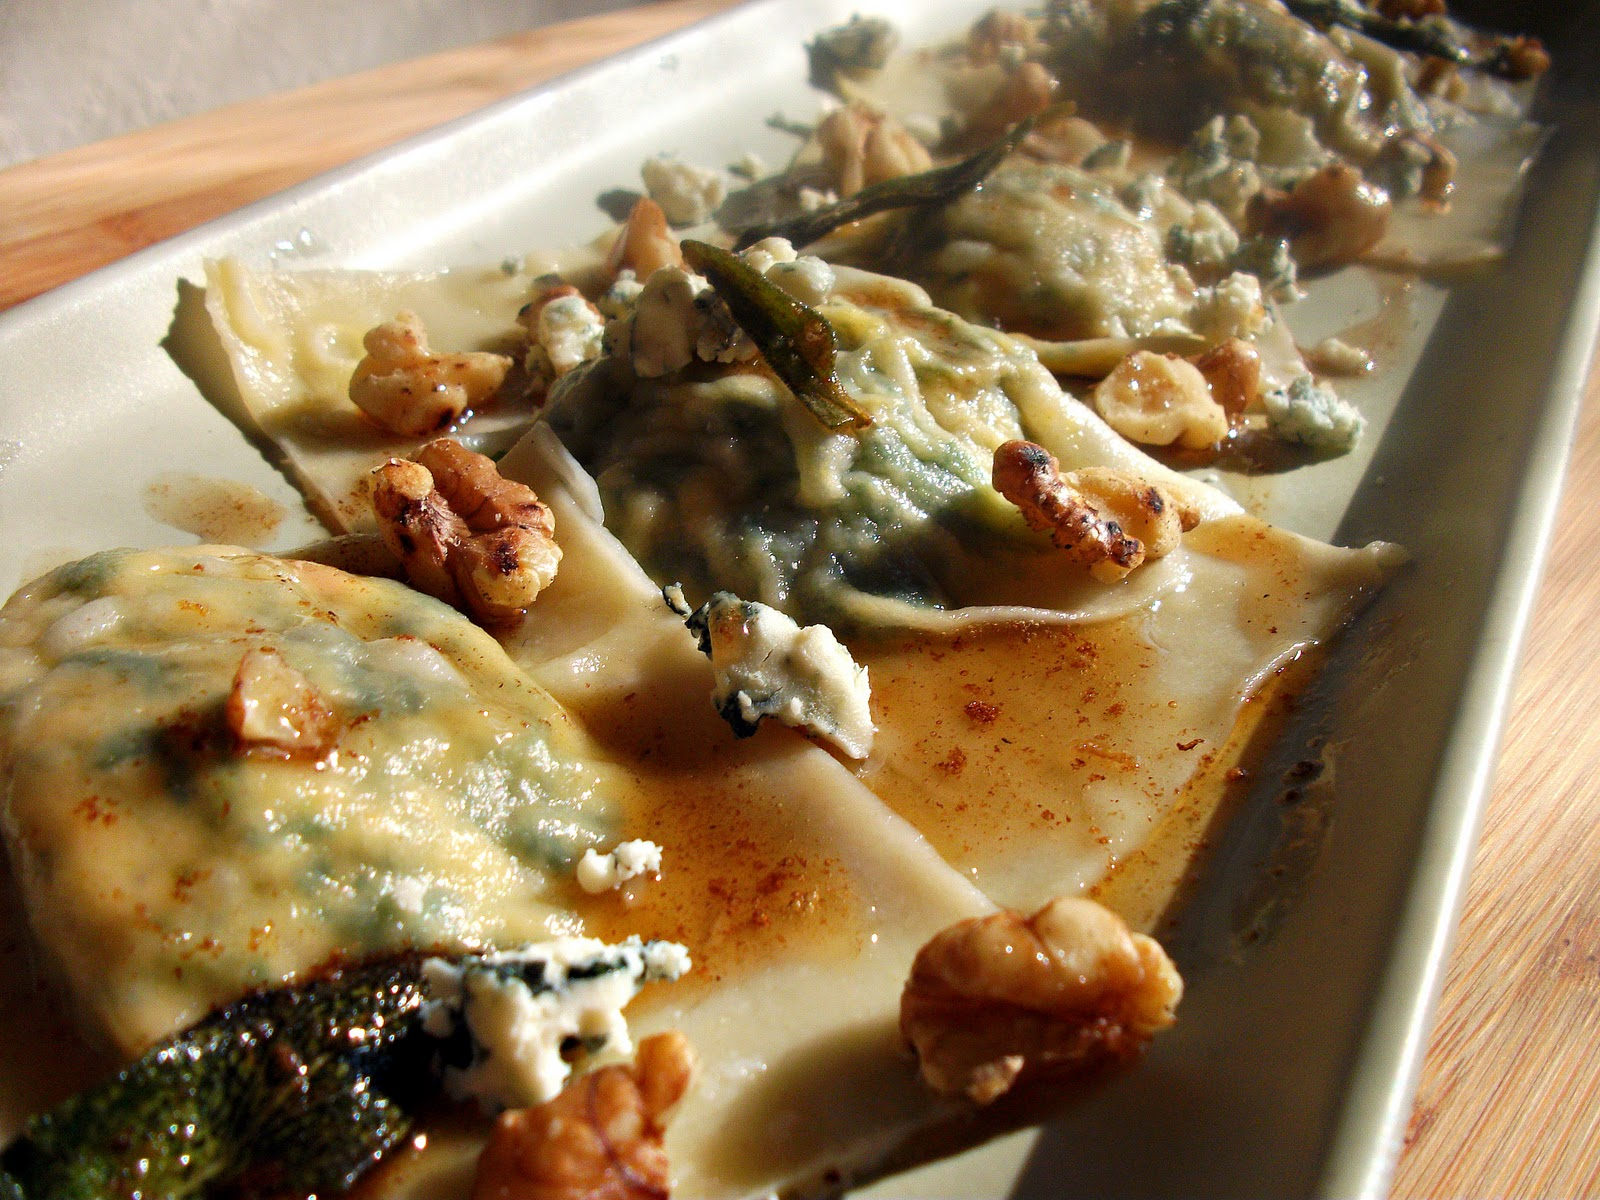 ... Butternut Squash Ravioli with Brown Butter, Sage & Gorgonzola Sauce